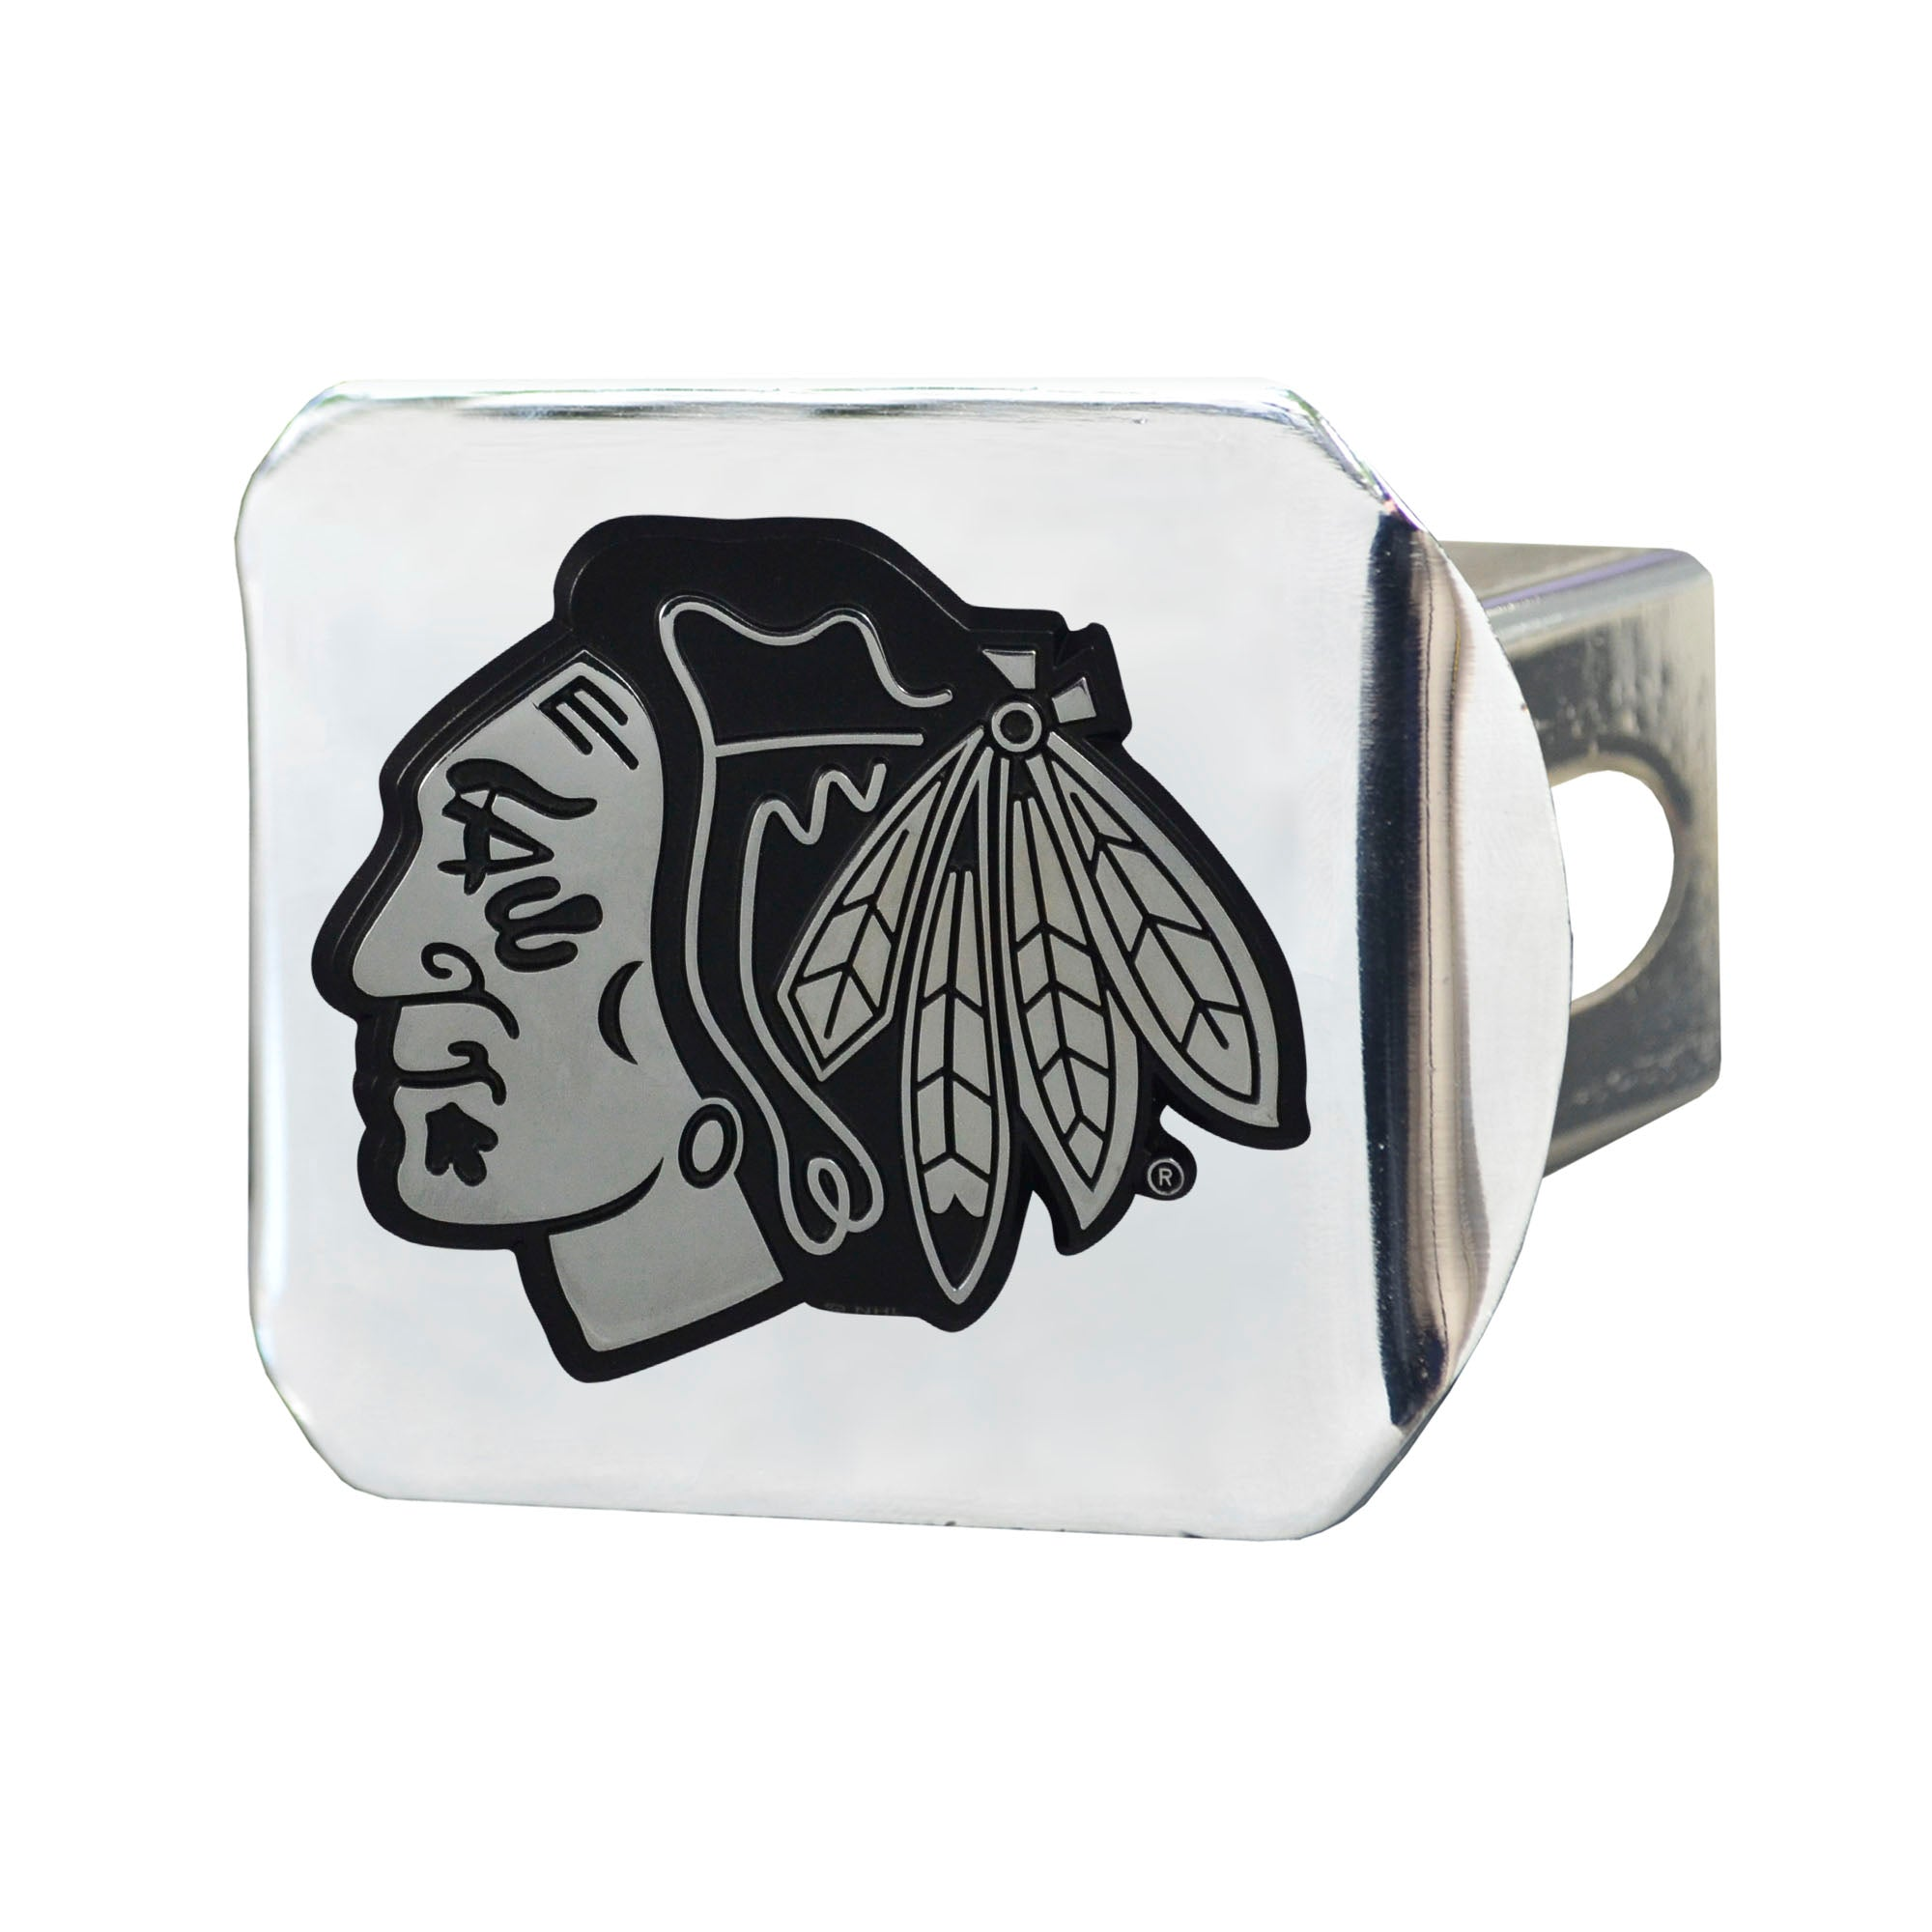 "NHL - Chicago Blackhawks Hitch Cover - Chrome on Chrome 3.4""x4"""